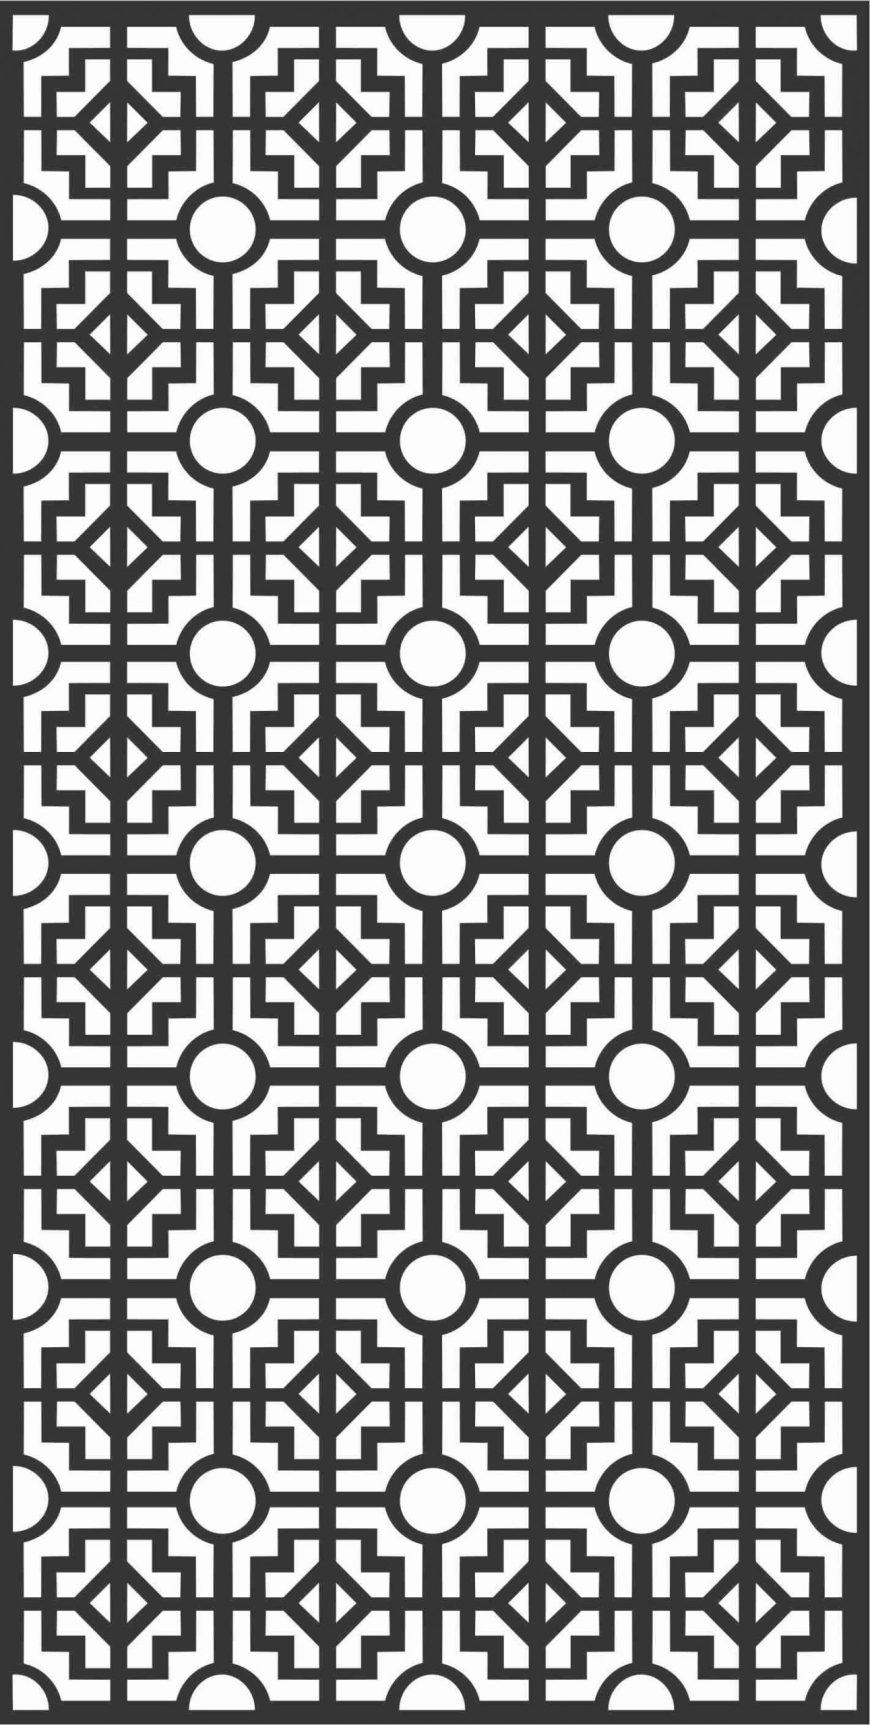 Decorative Screen Patterns For Laser Cutting 167 Free DXF File